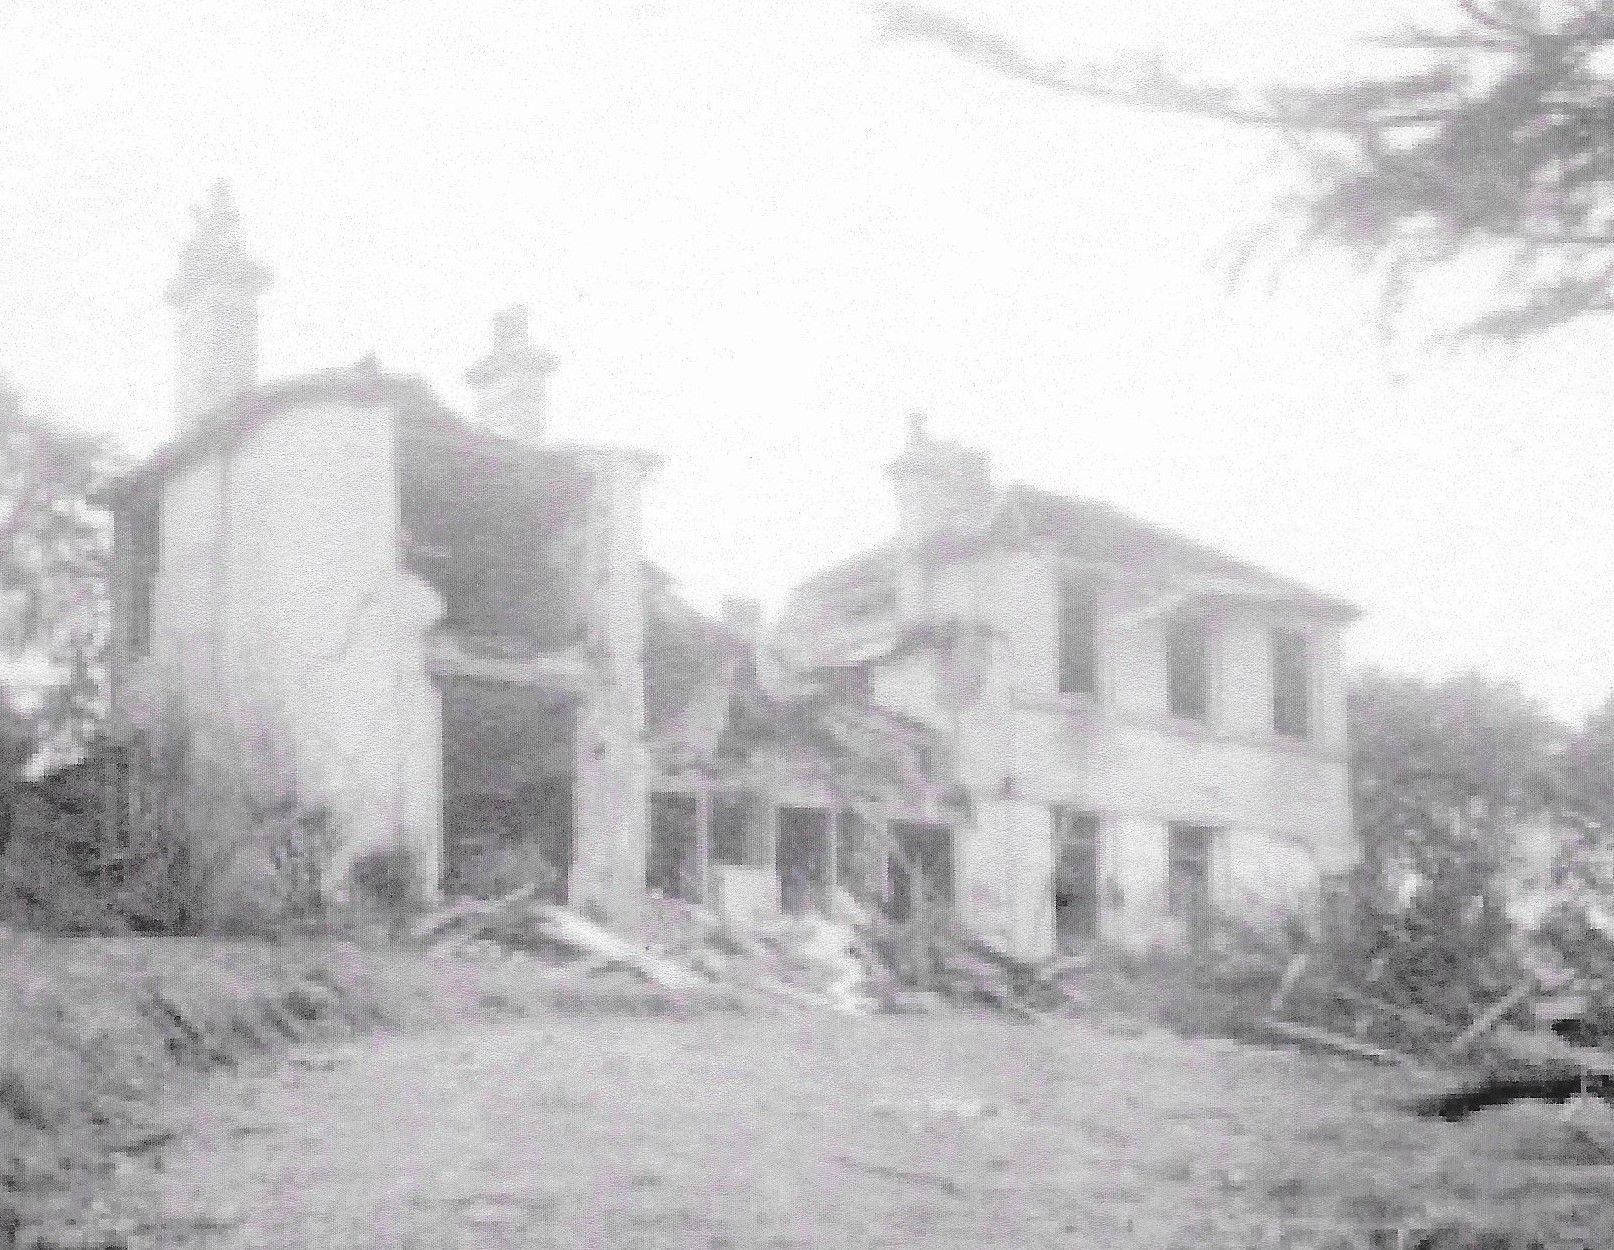 Fairlawn House damaged by a bomb in 1944